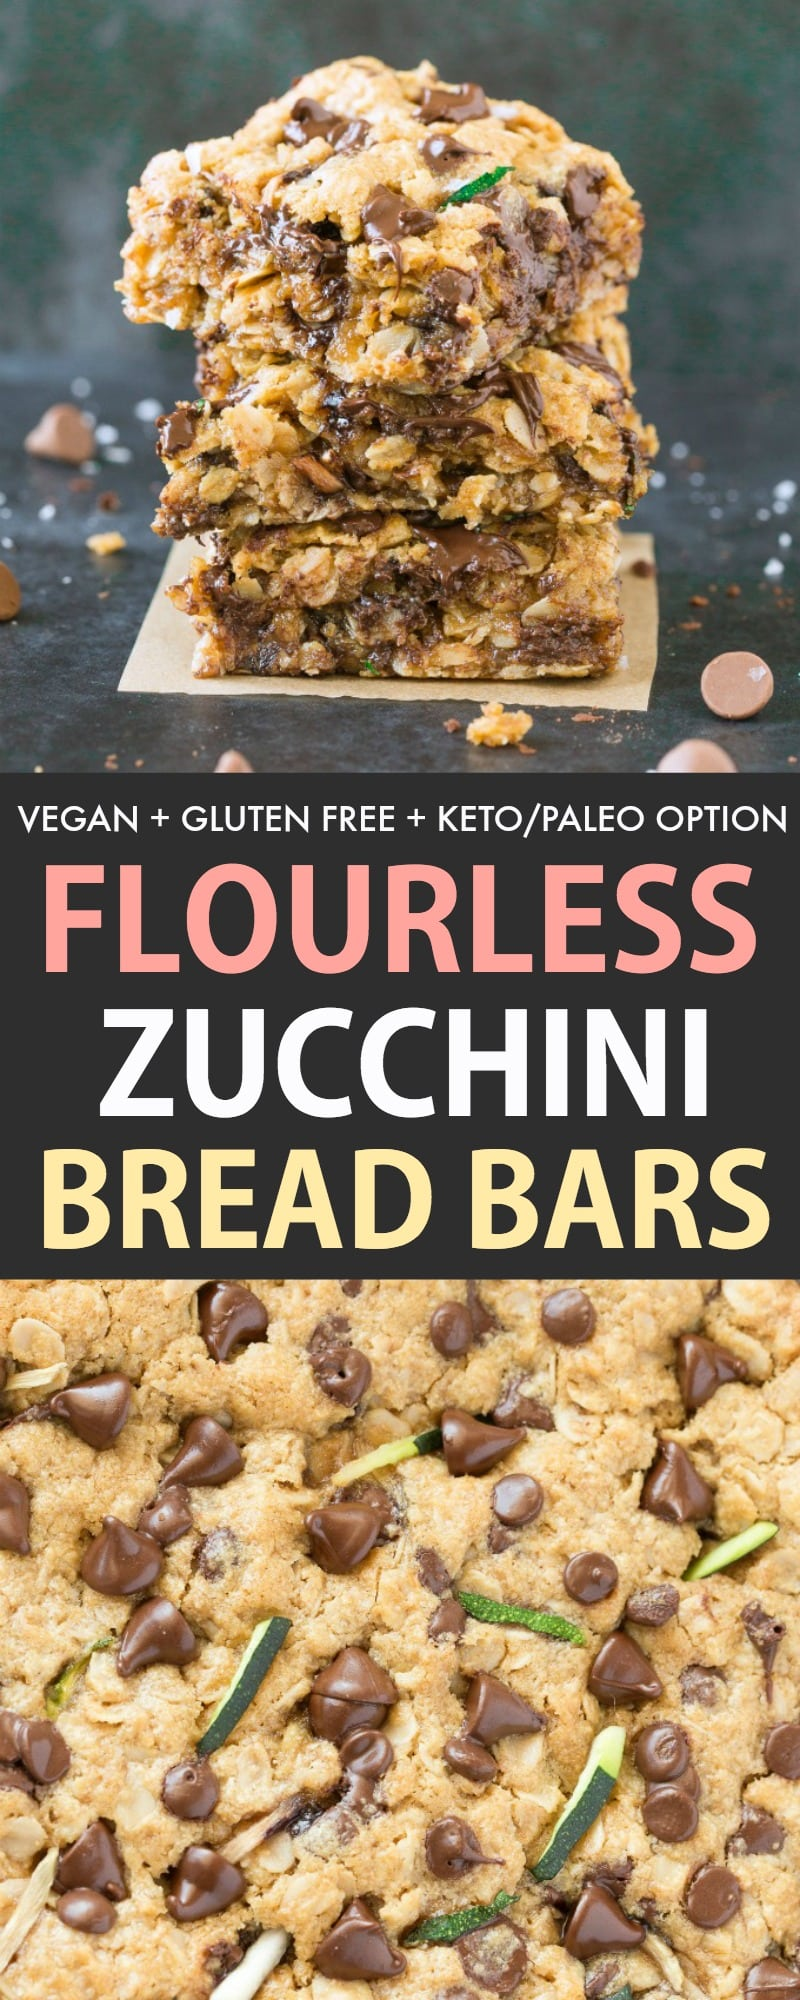 Healthy Zucchini Oatmeal Breakfast Bars with chocolate chips and perfect for a healthy dessert recipe with zucchini! Vegan, Gluten Free, Paleo and Keto!